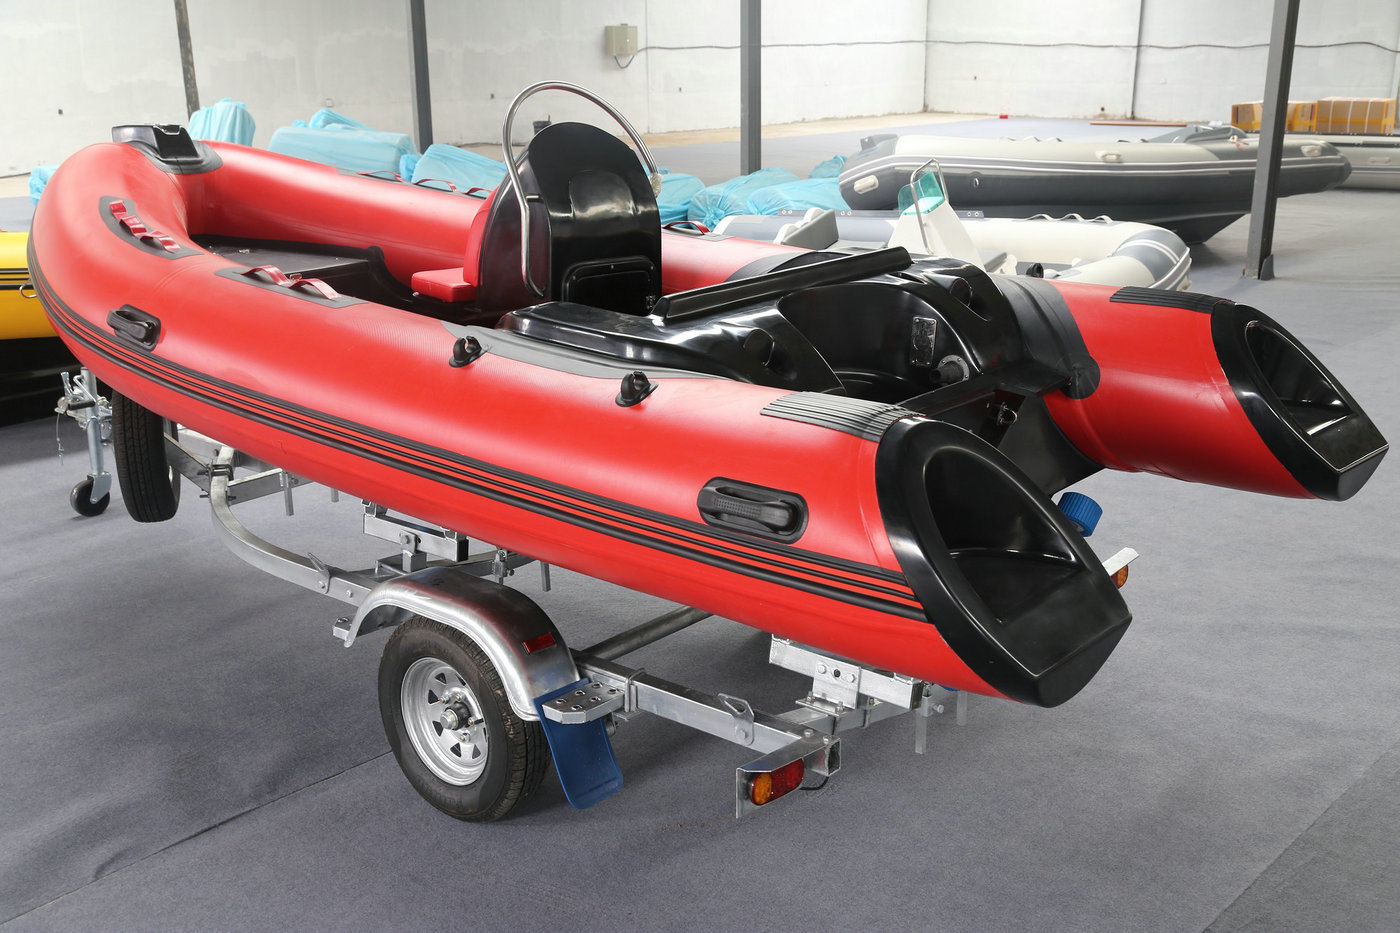 14FT Rib420c Recsue Boat with Ce 4.3m Fiberglass Hul Rigidl Inflatable Boat